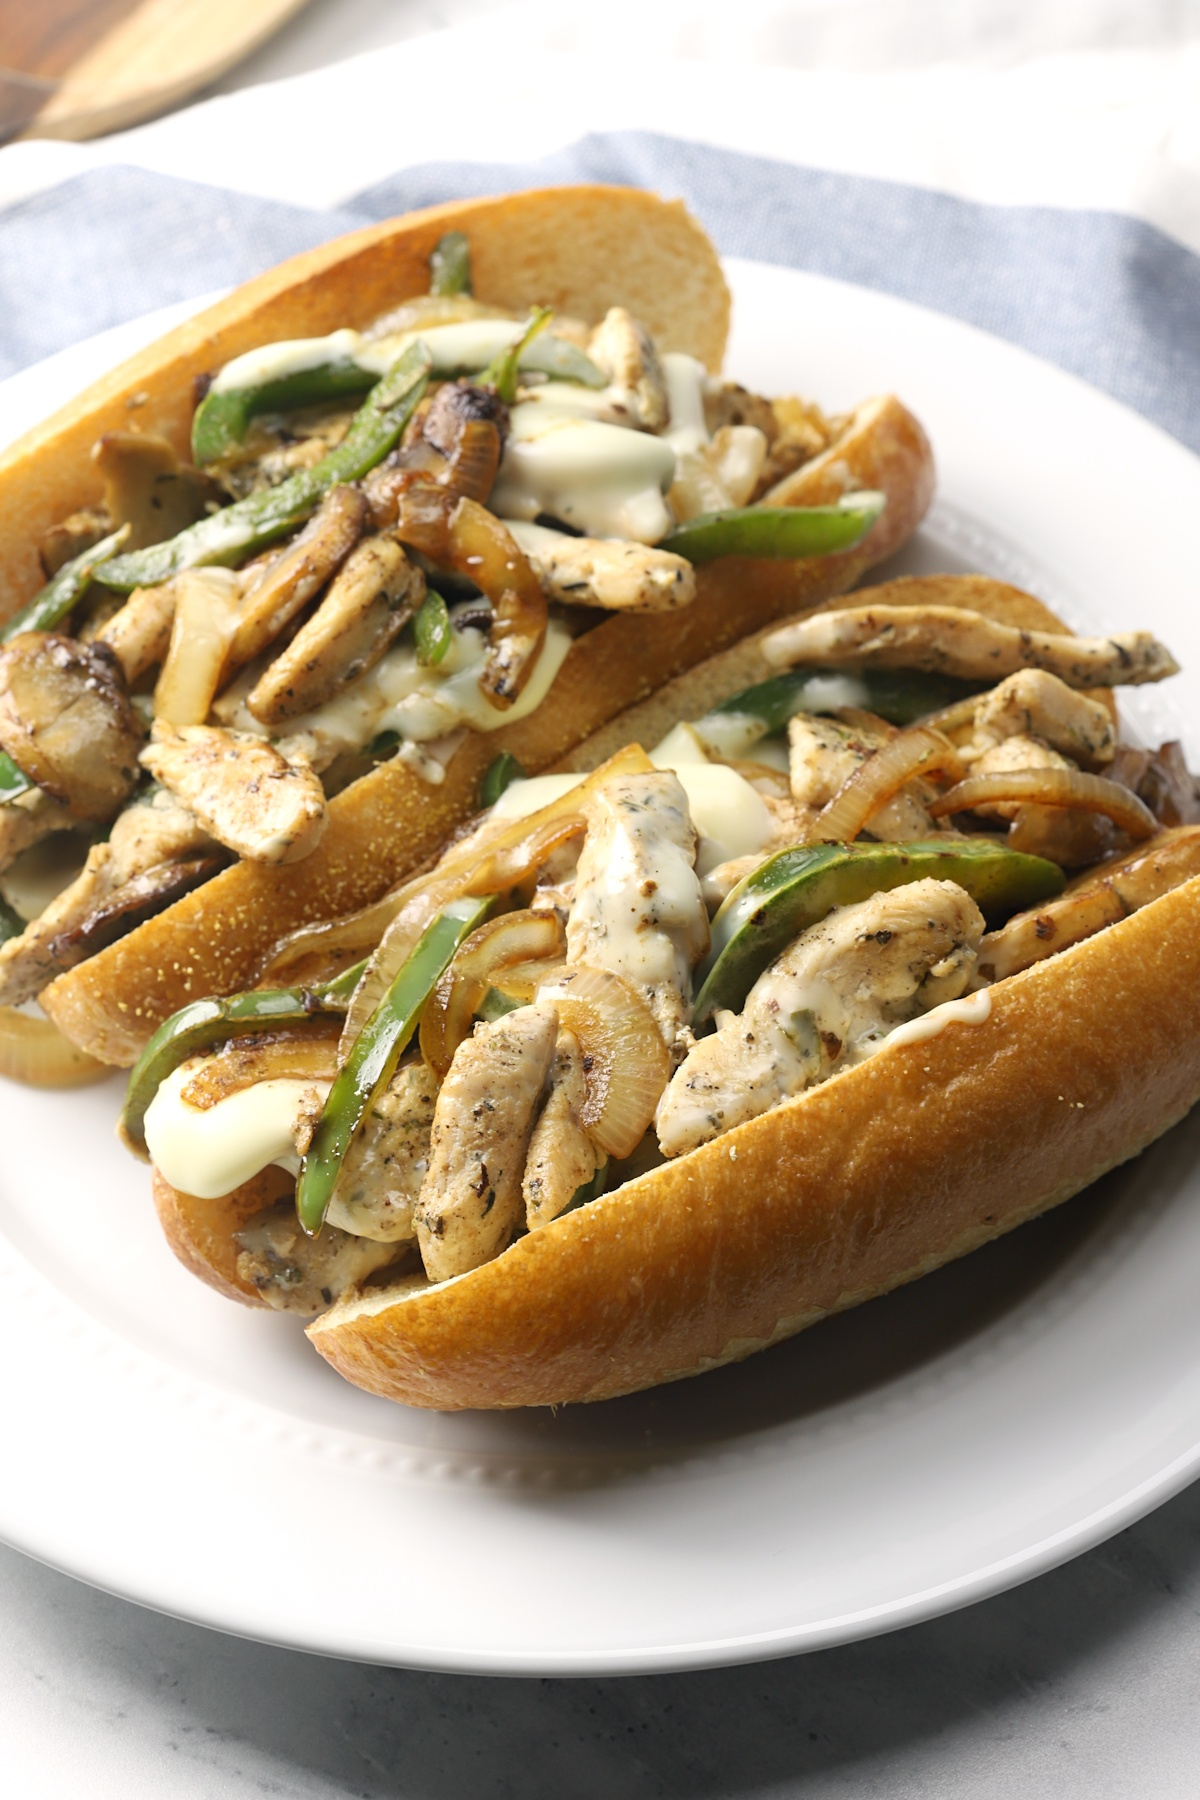 Two chicken cheesesteaks on a white plate.